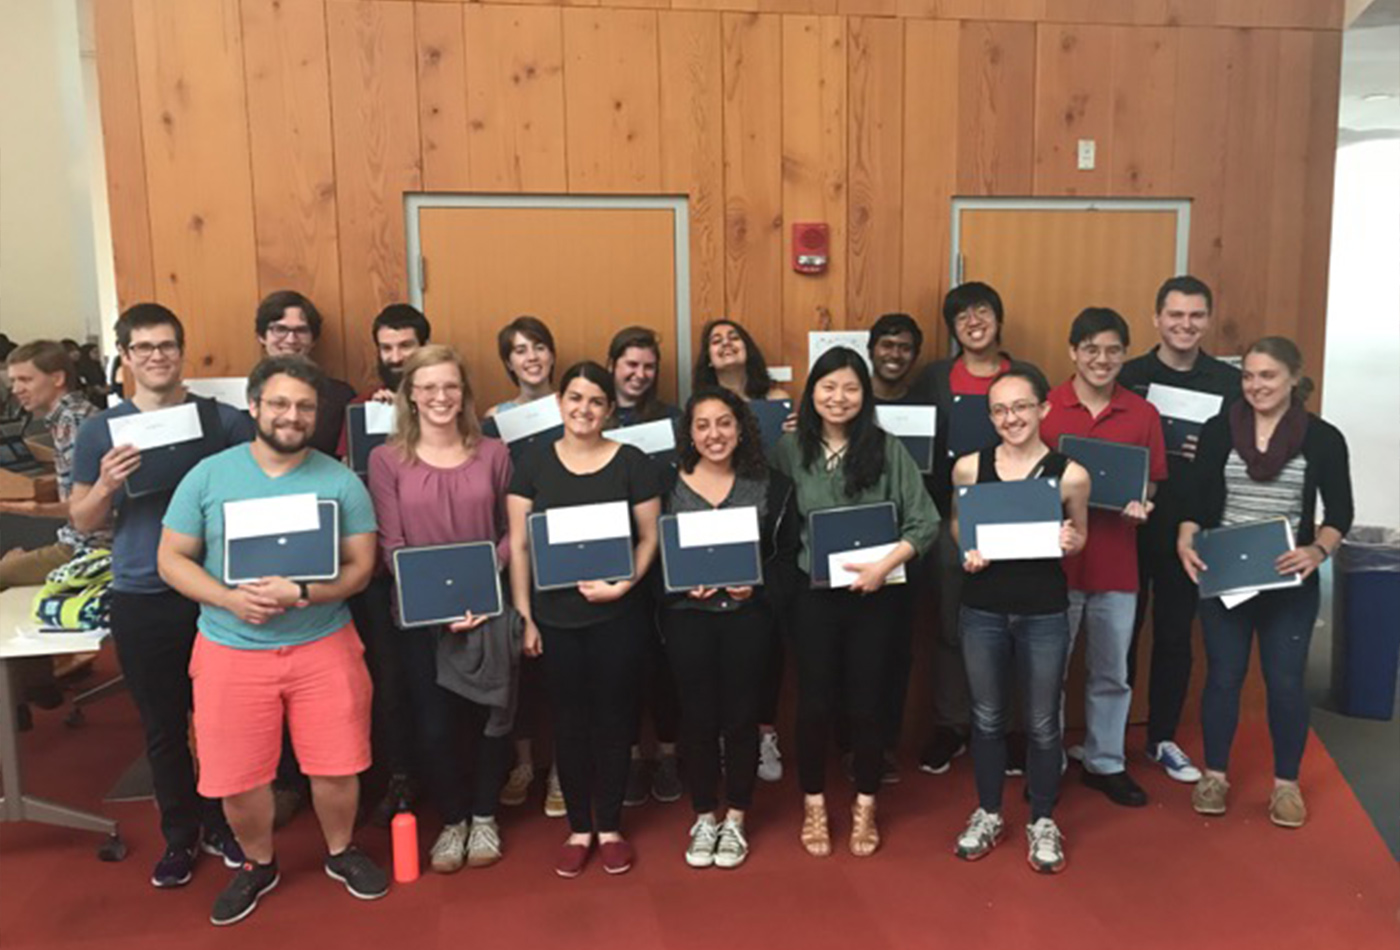 Graduate Students pose in rows with their Teaching Assistant Award certificates.